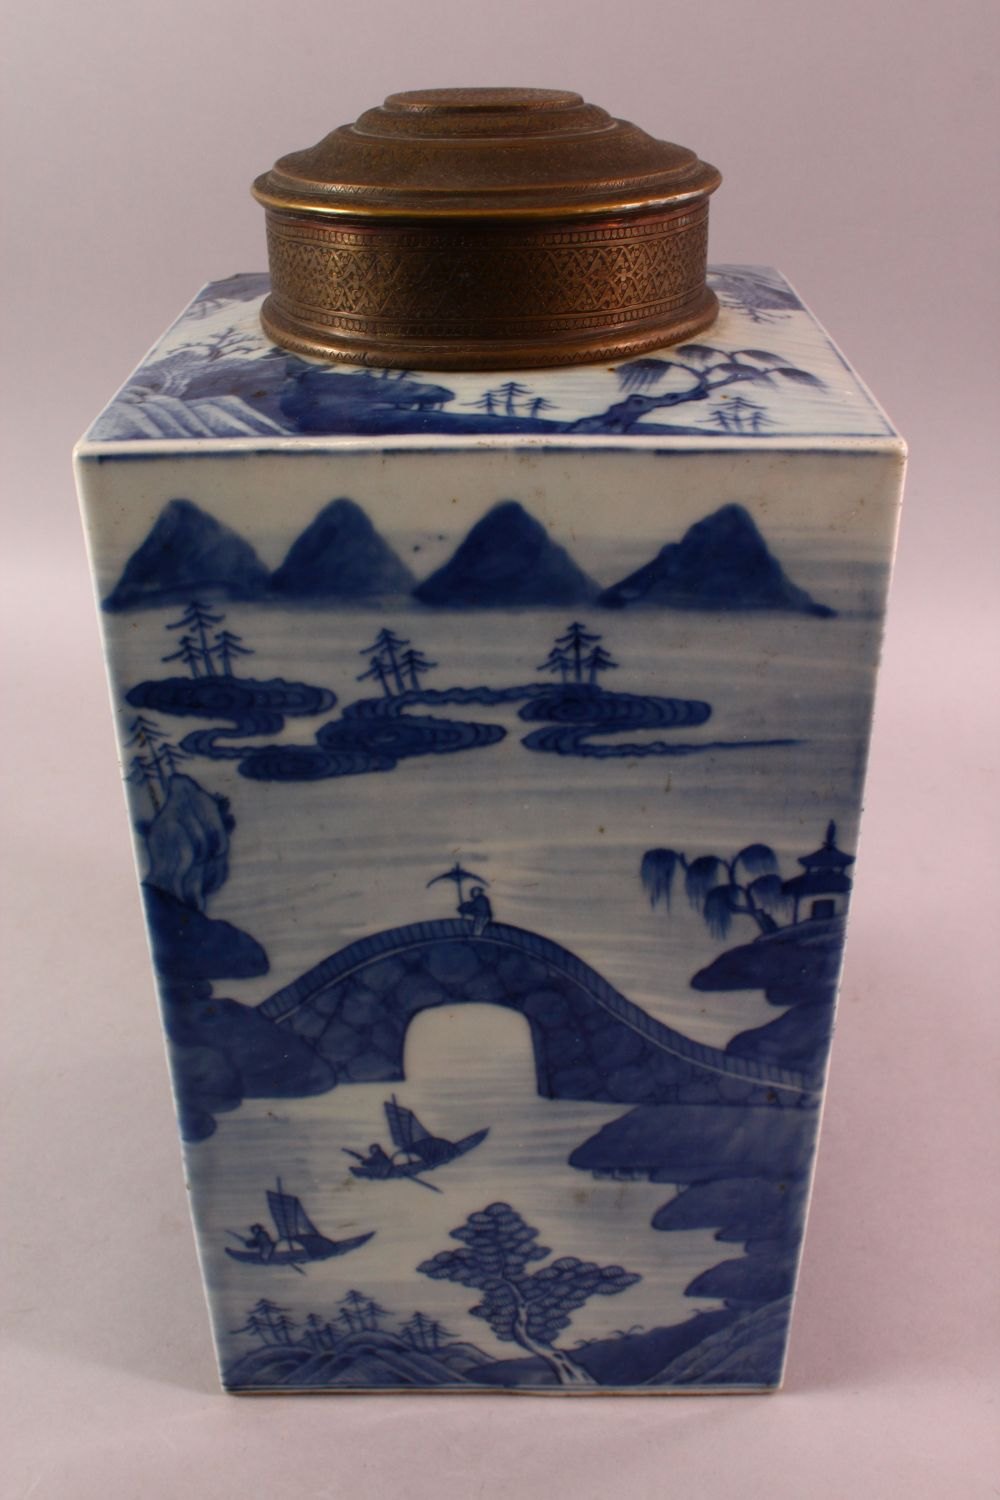 A LARGE CHINESE 18TH / 19TH CENTURY CHINESE BLUE & WHITE CADDY, decorated with landscape views, with - Image 3 of 5